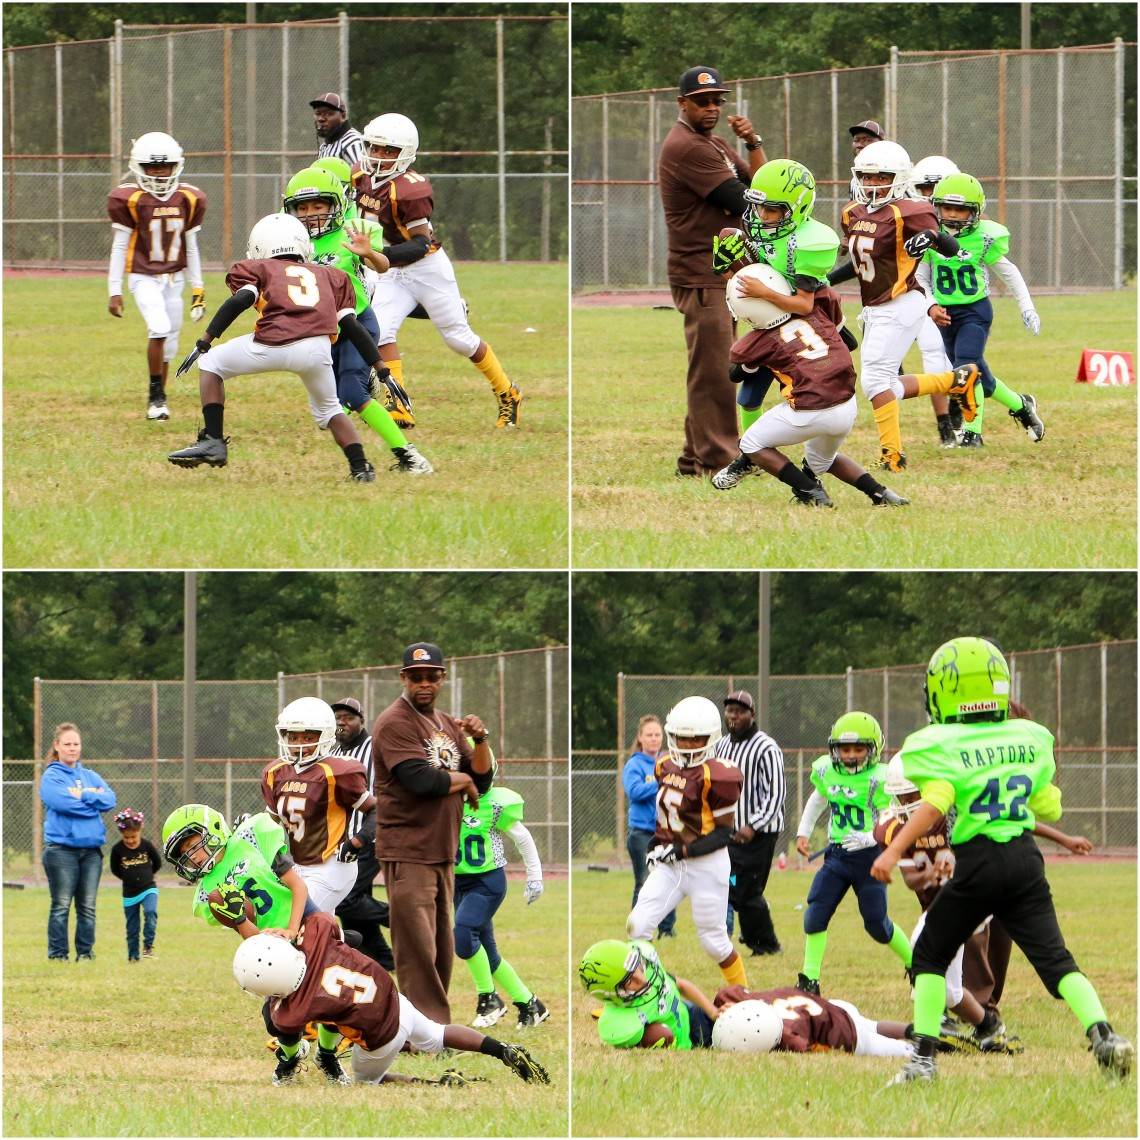 LoCo Raging Raptors 9uJV 090218 14-17collage